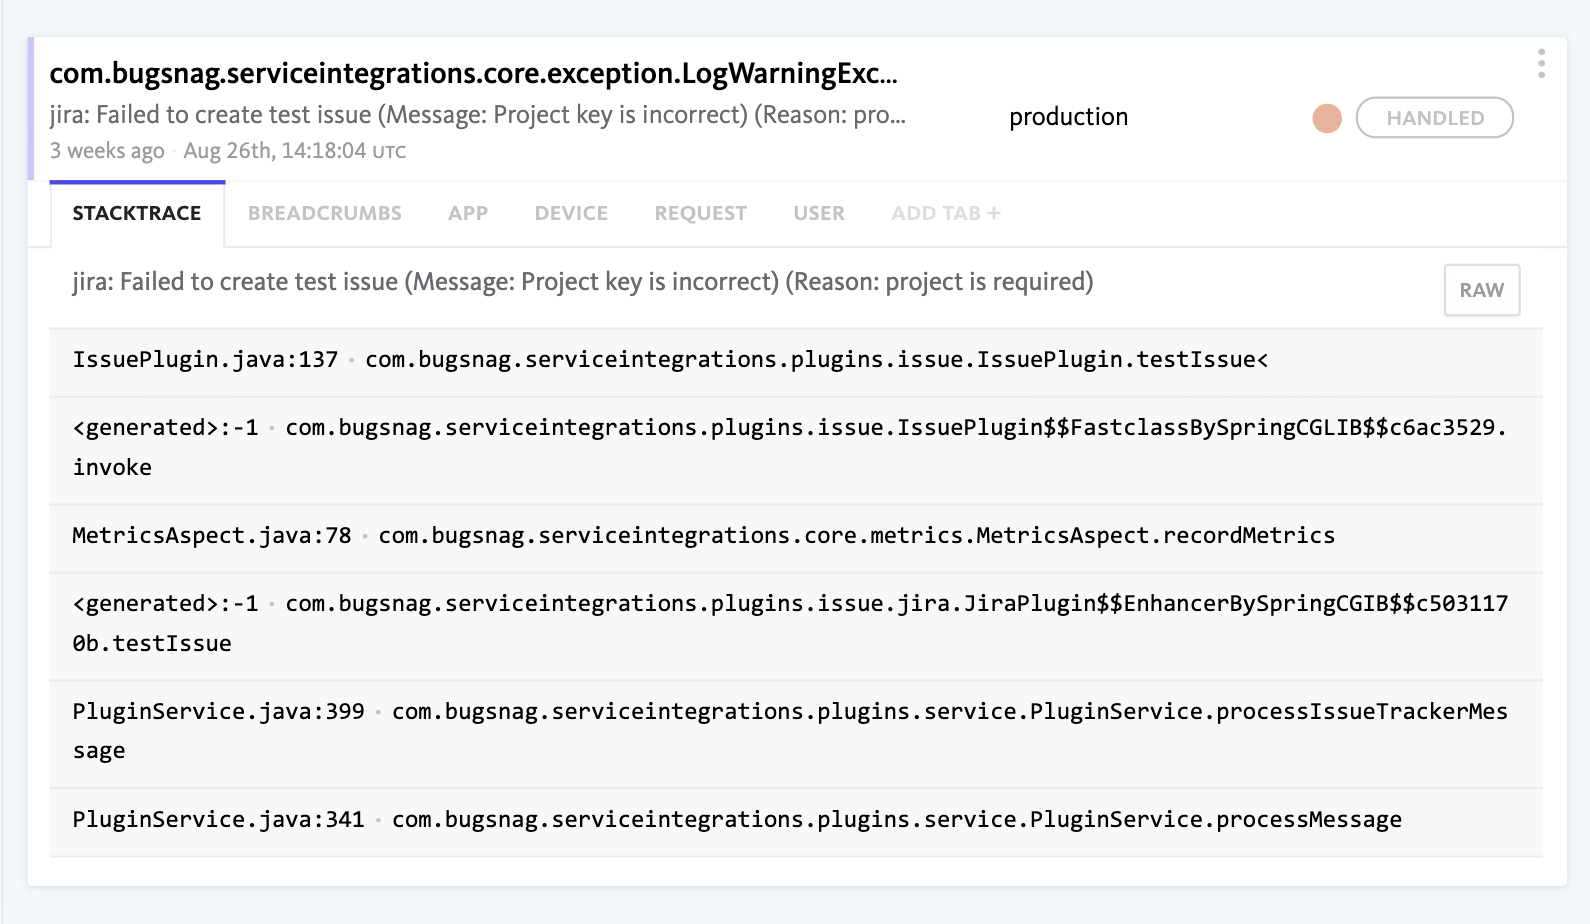 Stacktrace of integration error in support